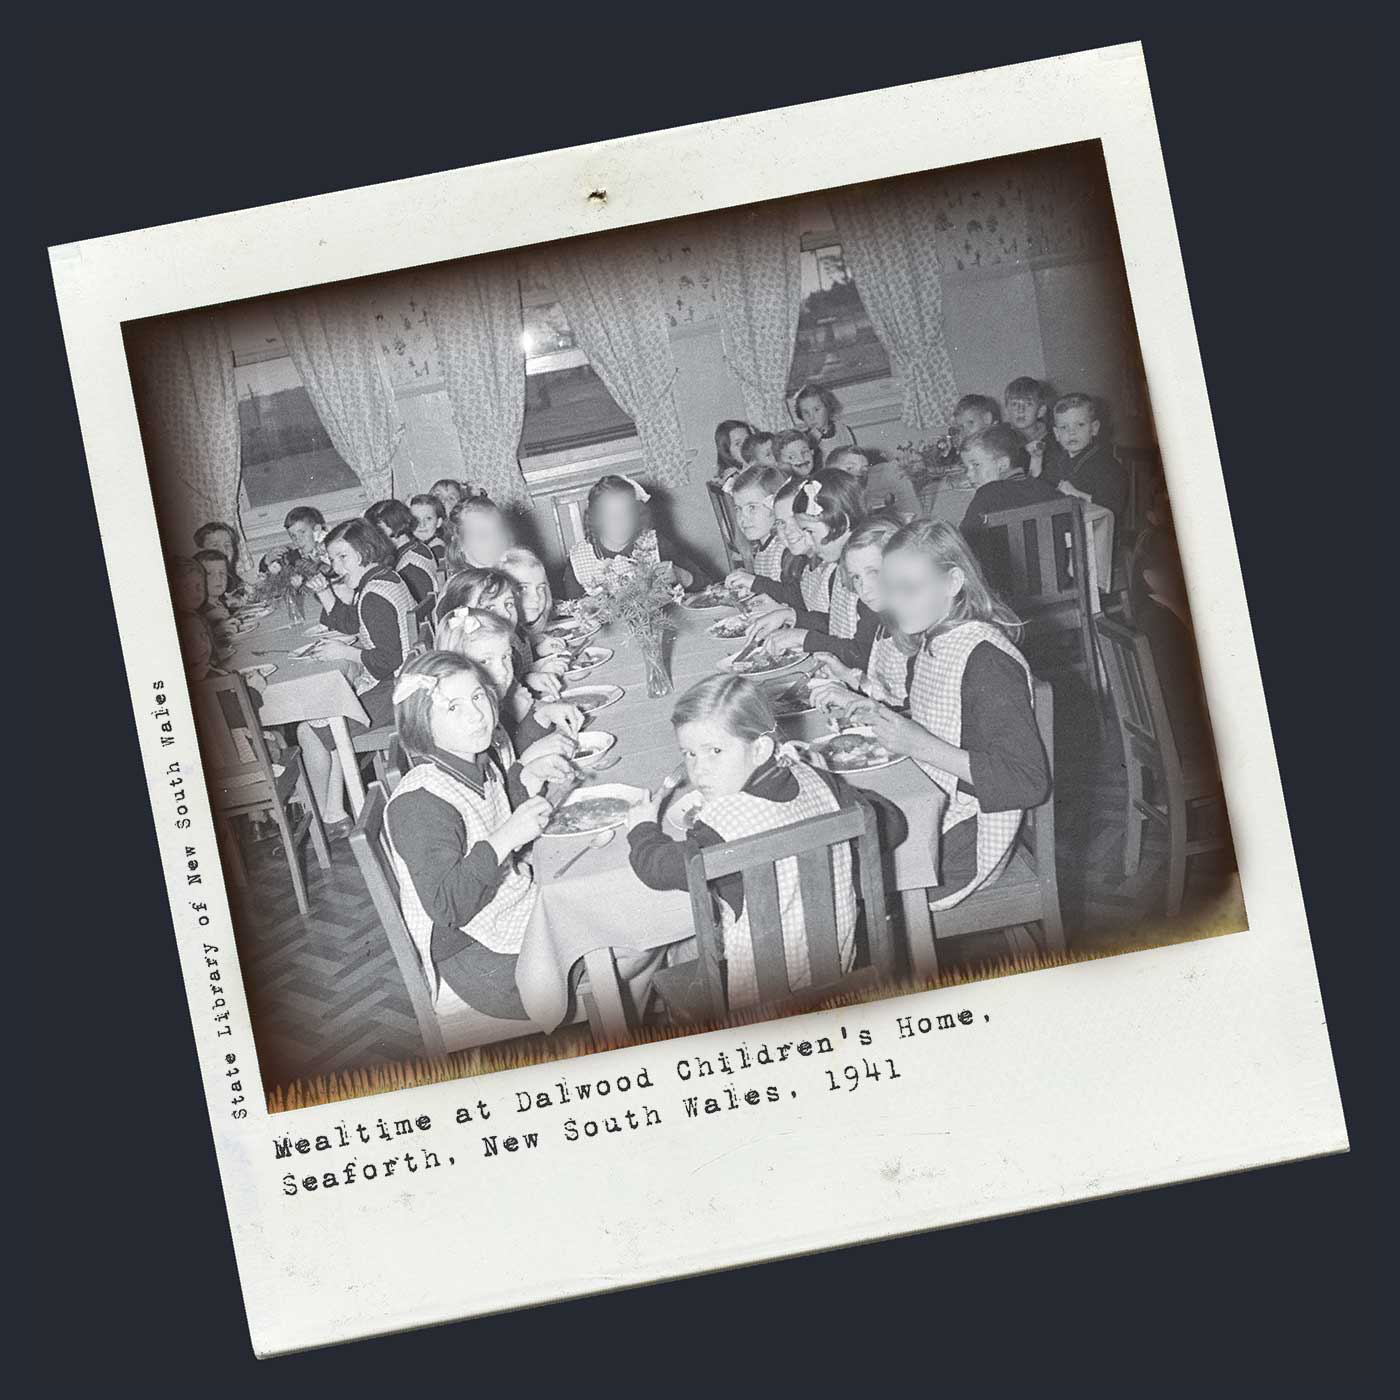 Polaroid photograph showing three tables of children sitting down to eat a meal. The girls wear black tops and checked aprons, and the boys wear dark suit coats. Each table has a vase of flowers at the centre. Typewritten text below reads 'Mealtime at Dalwood Children's Home, Seaforth, New South Wales, 1941'. 'State Library of New South Wales' is typed at the left side. - click to view larger image